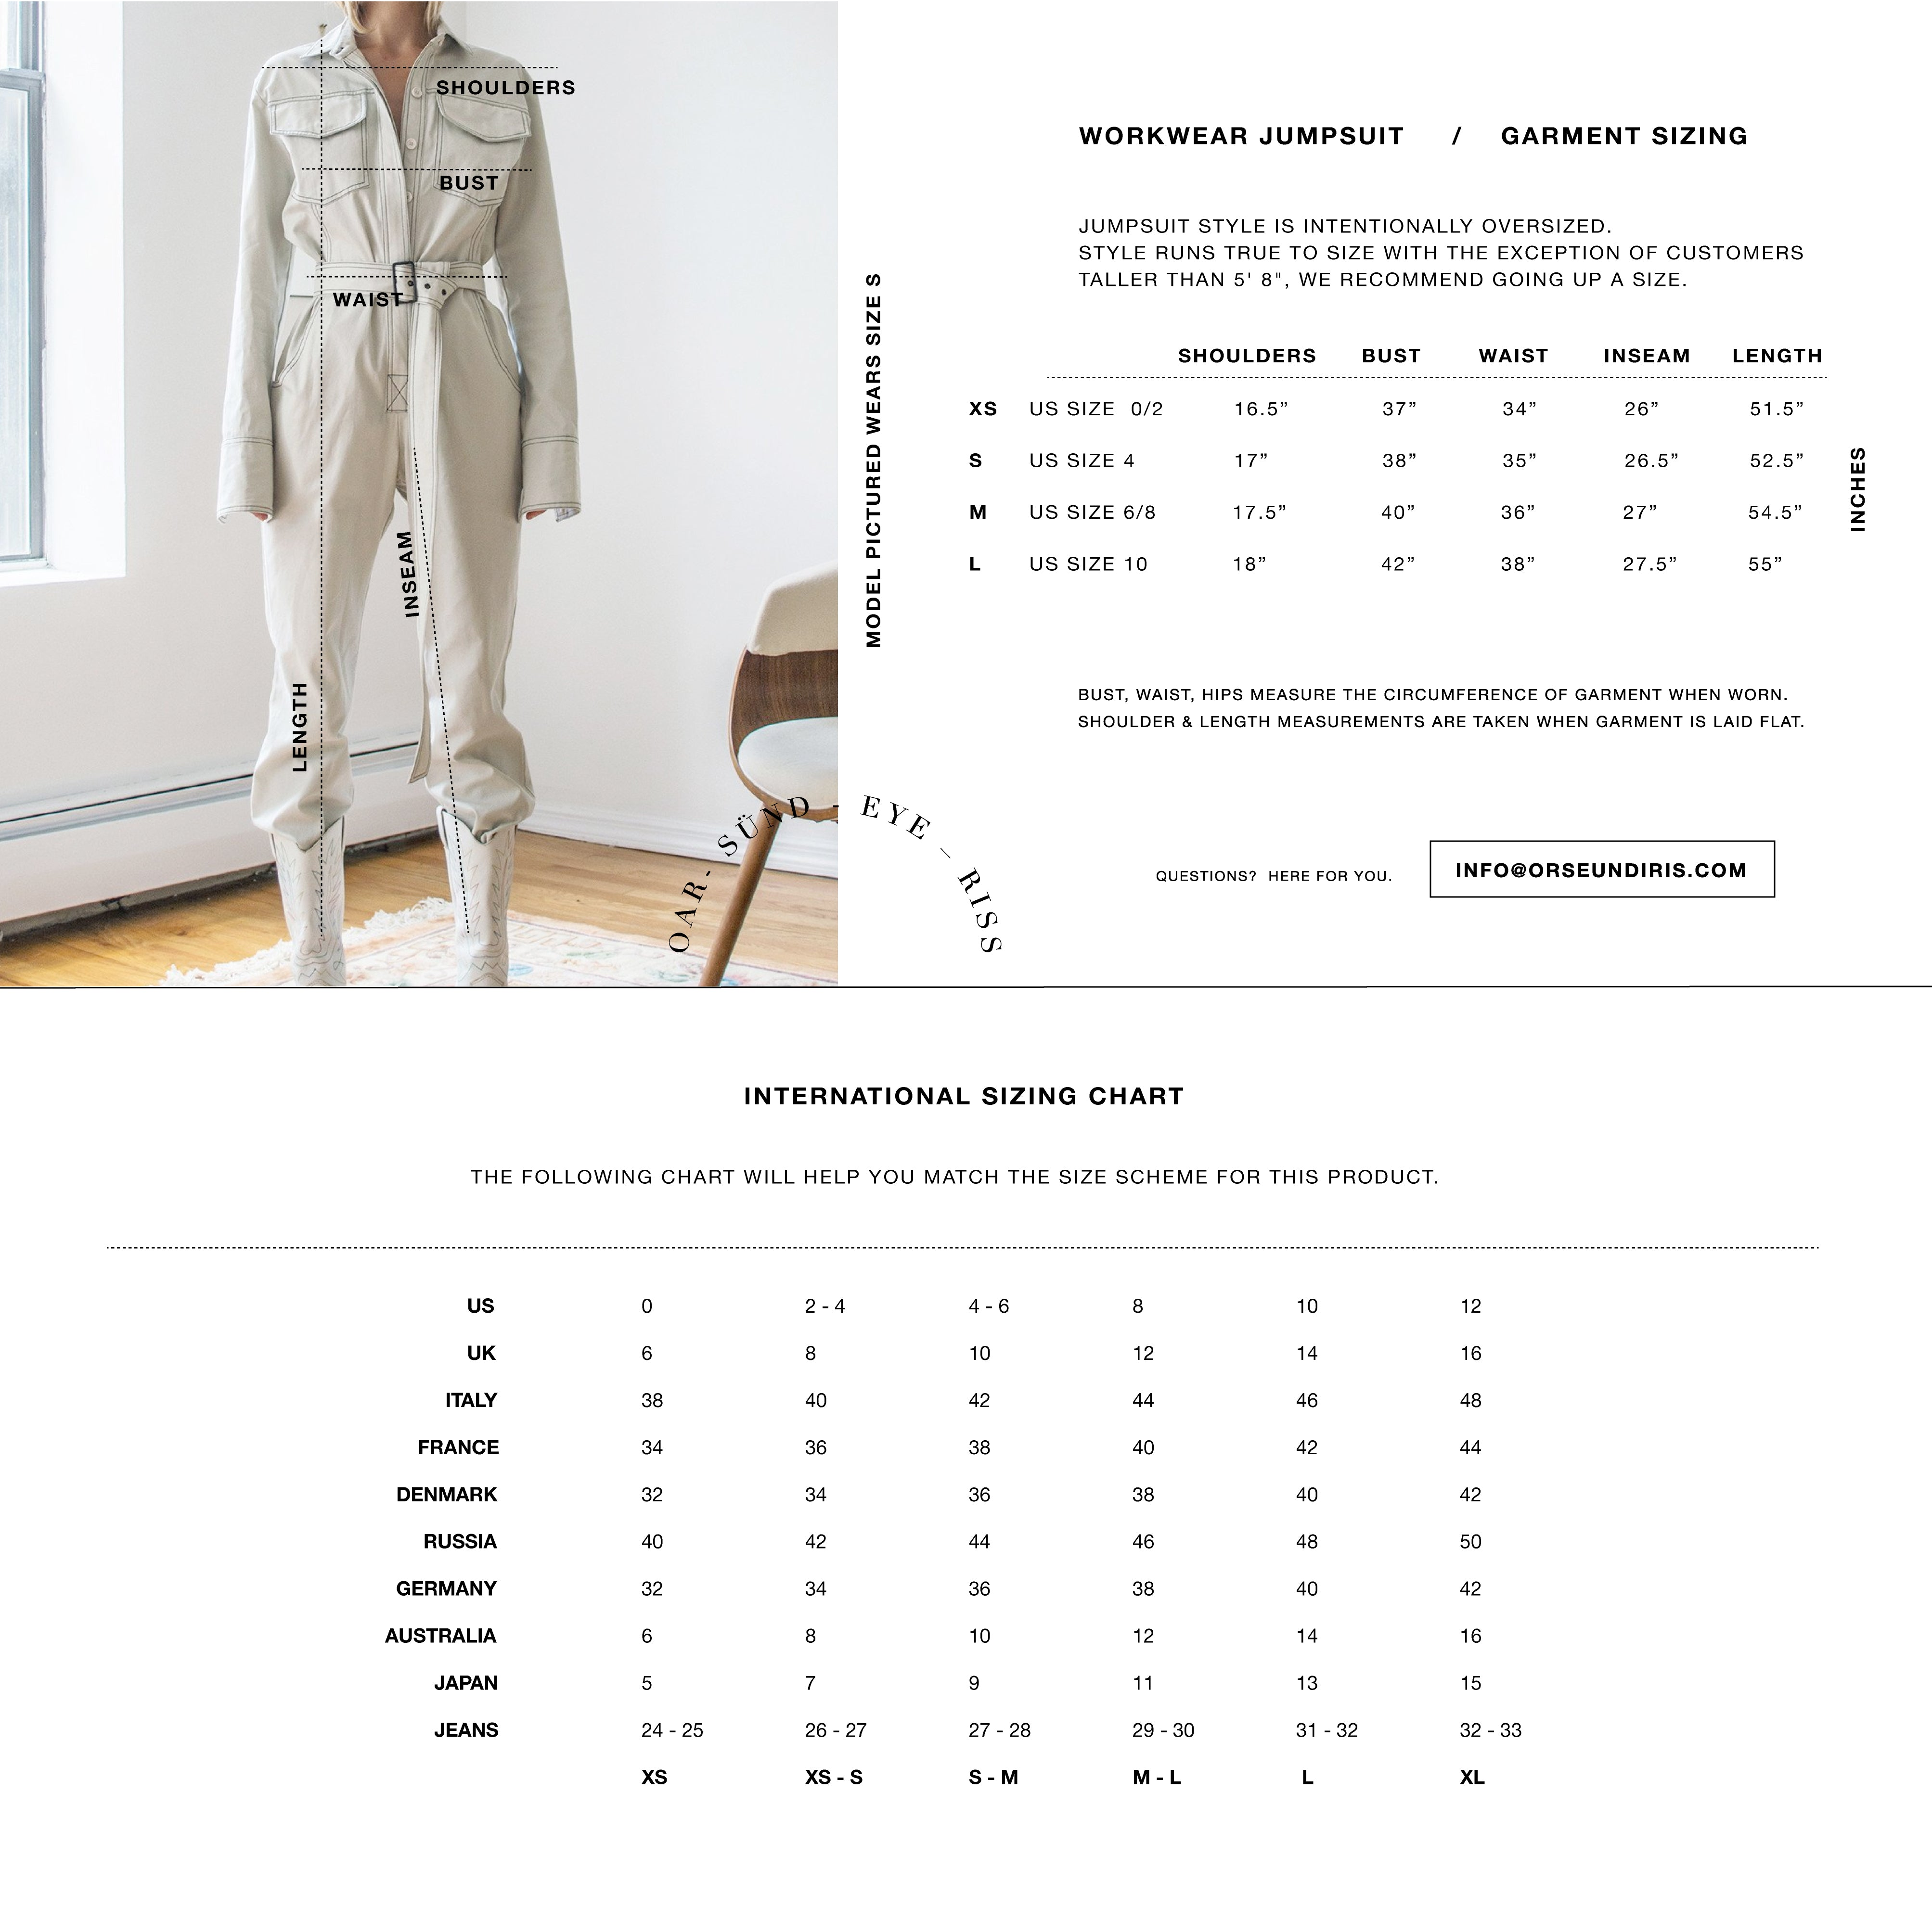 WORKWEAR JUMPSUIT OFF-WHITE